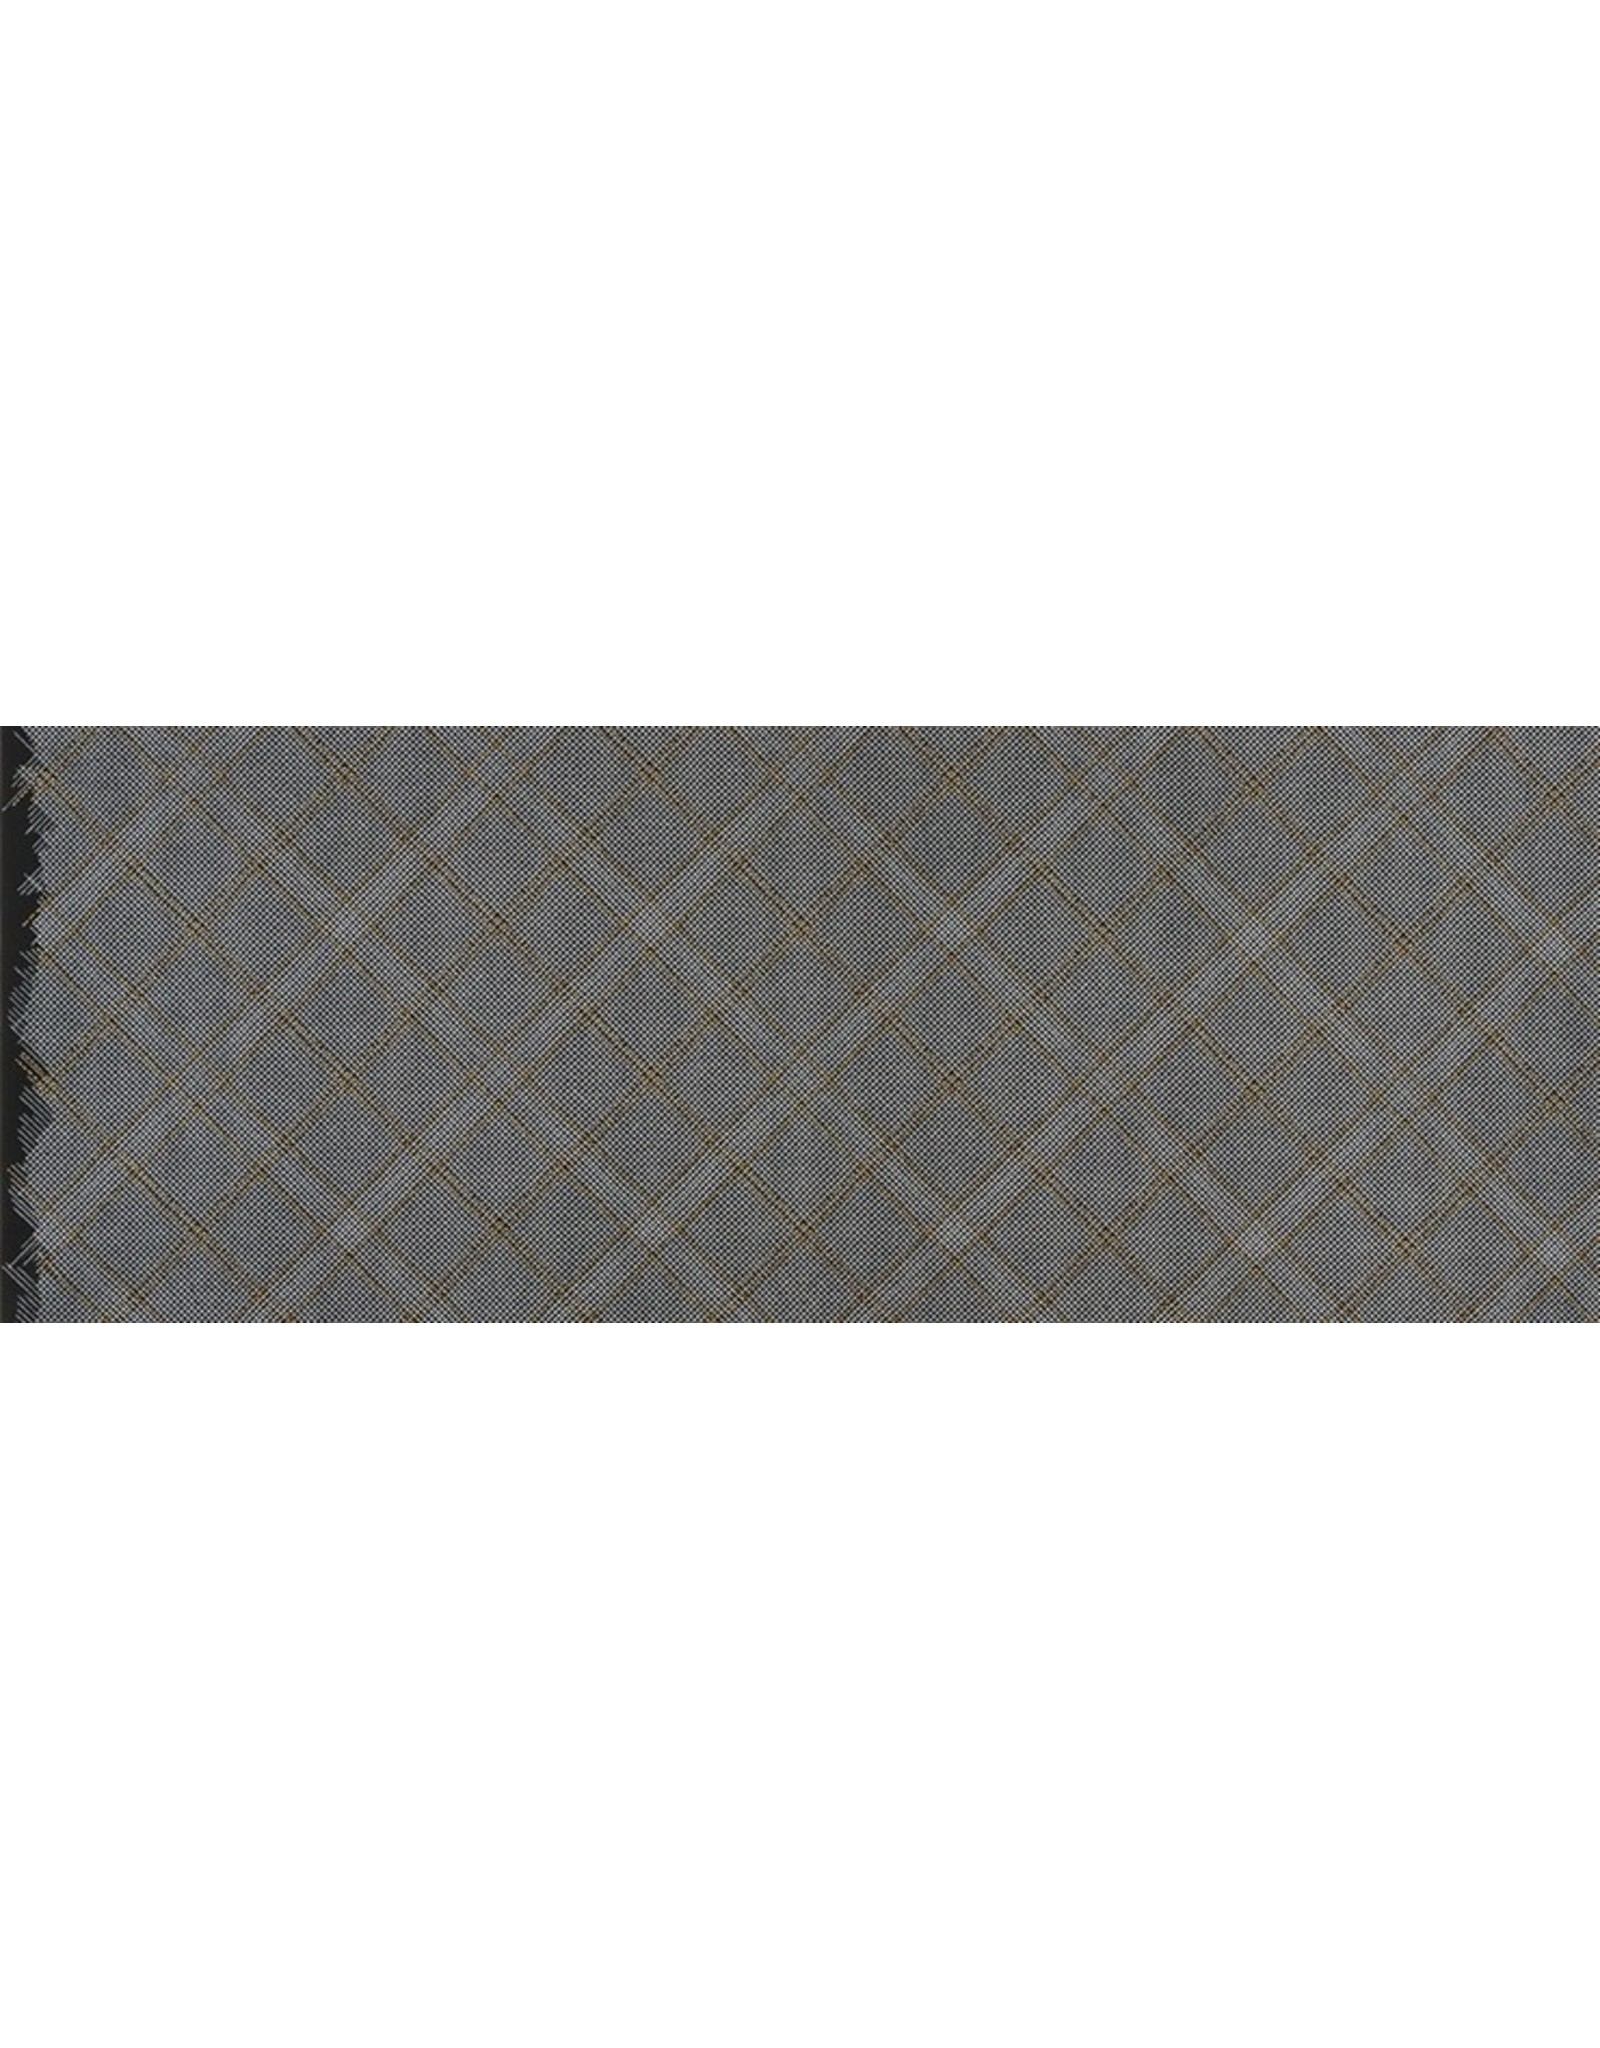 Robert Kaufman Collection CF - Tartan Single Border Black